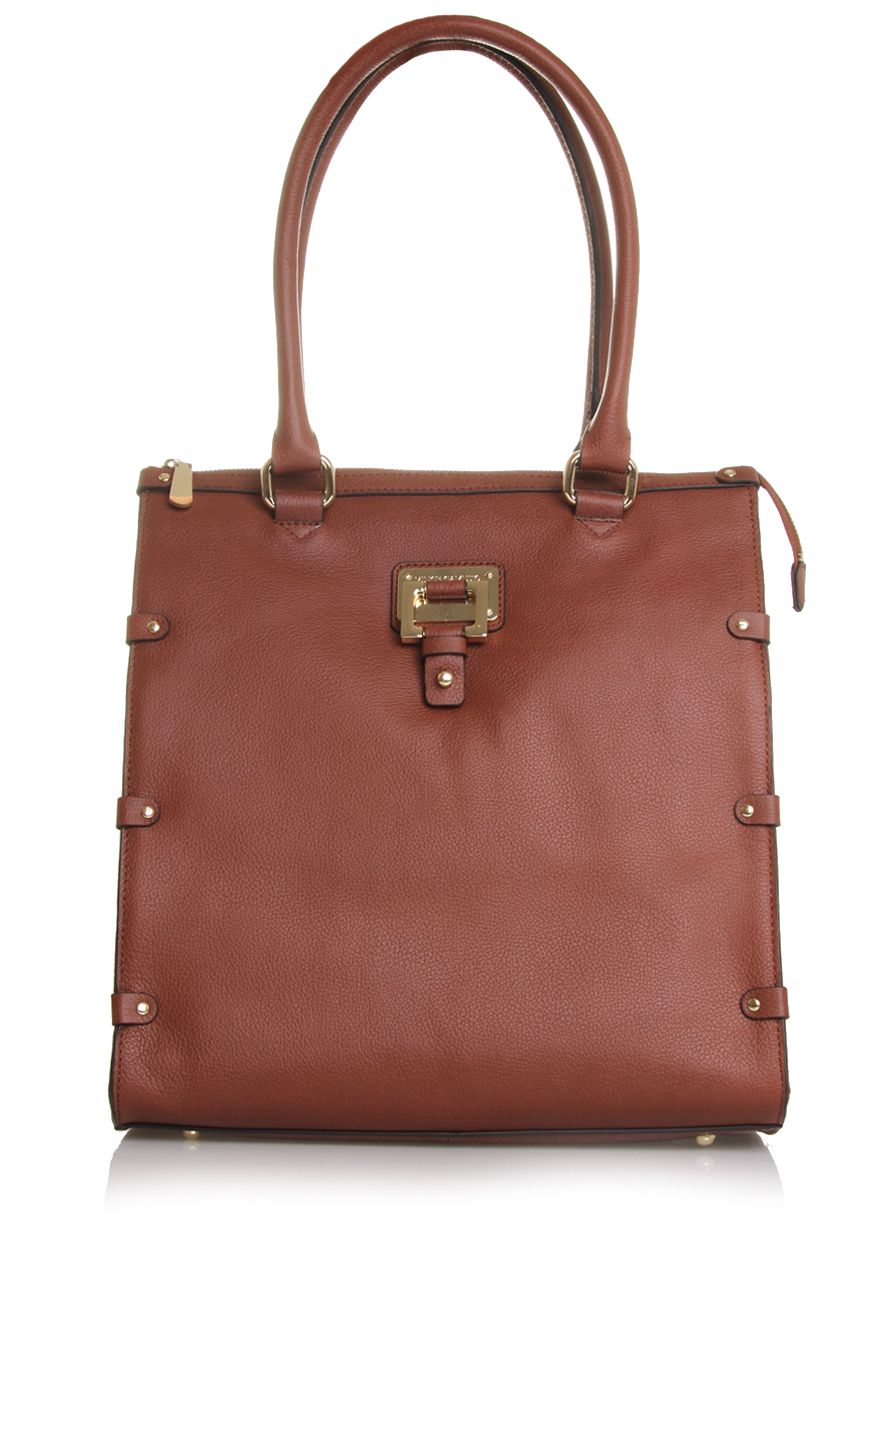 Dani brown leather tote bag